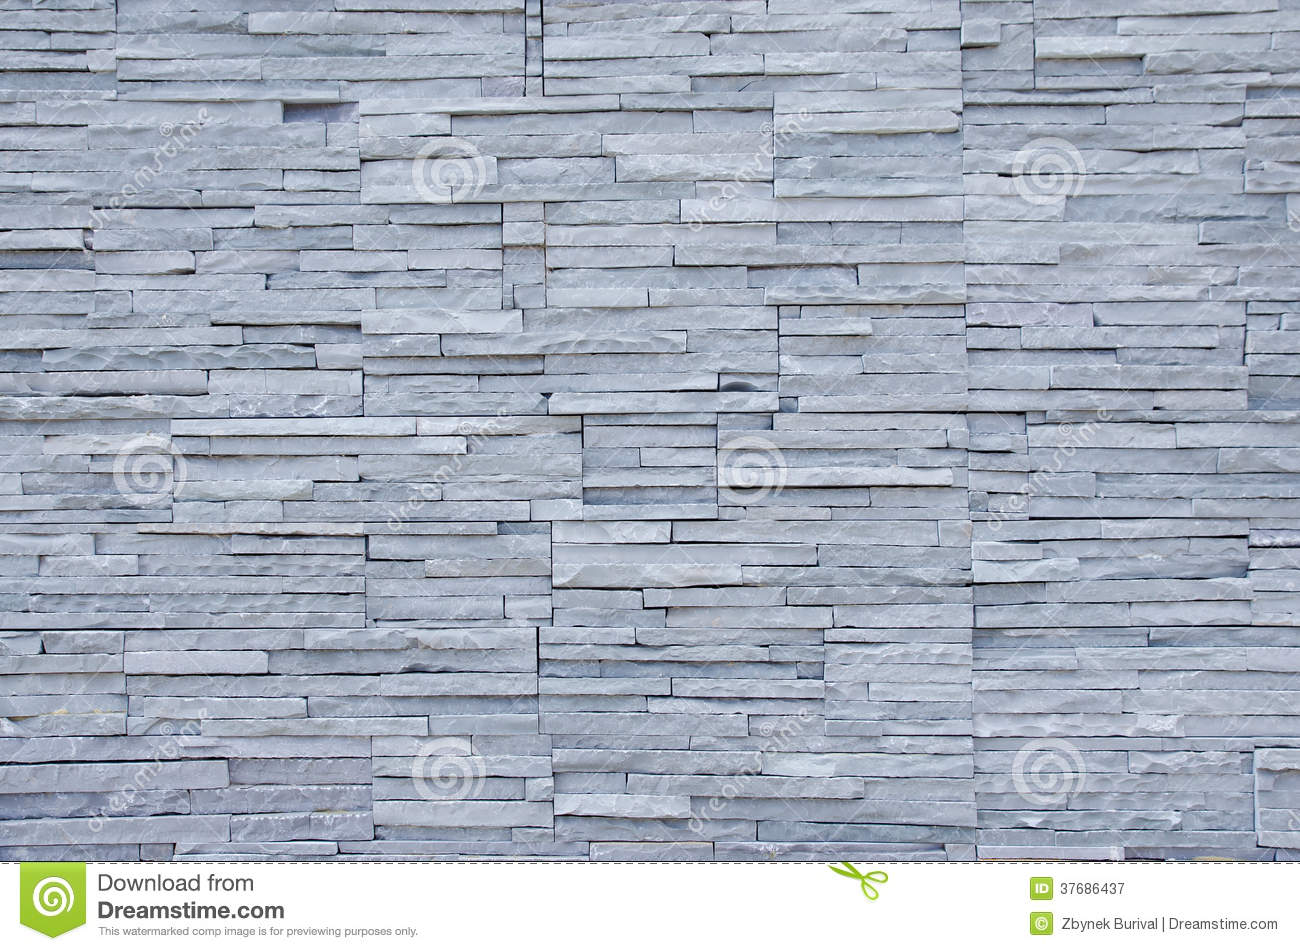 Natural Limestone Tiles Texture Stock Image - Image of stony ...